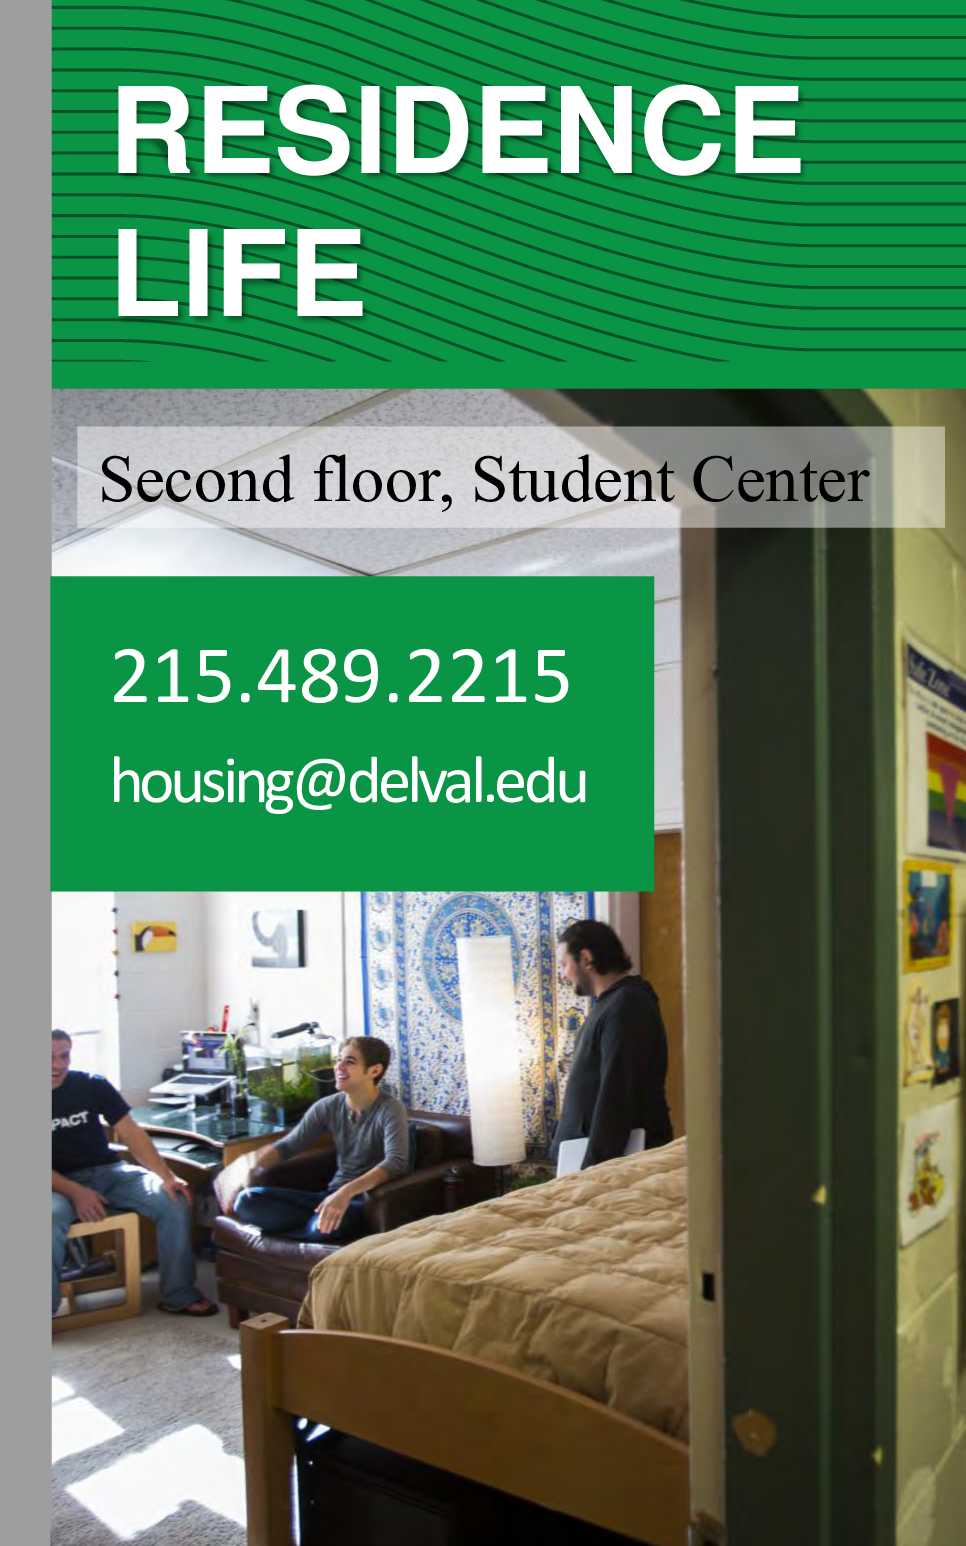 Information regarding Residence Life Office is as follows Start date is March 08 2017 and End Date is December 31 2025 and File is Browse and Affiliation is Department and Name is Derek Smith and Email is derek.smith@delval.edu and File Name is ResLife2_comp.jpg and Name of Ad/Event is Residence Life Office and Screen Location is Side and